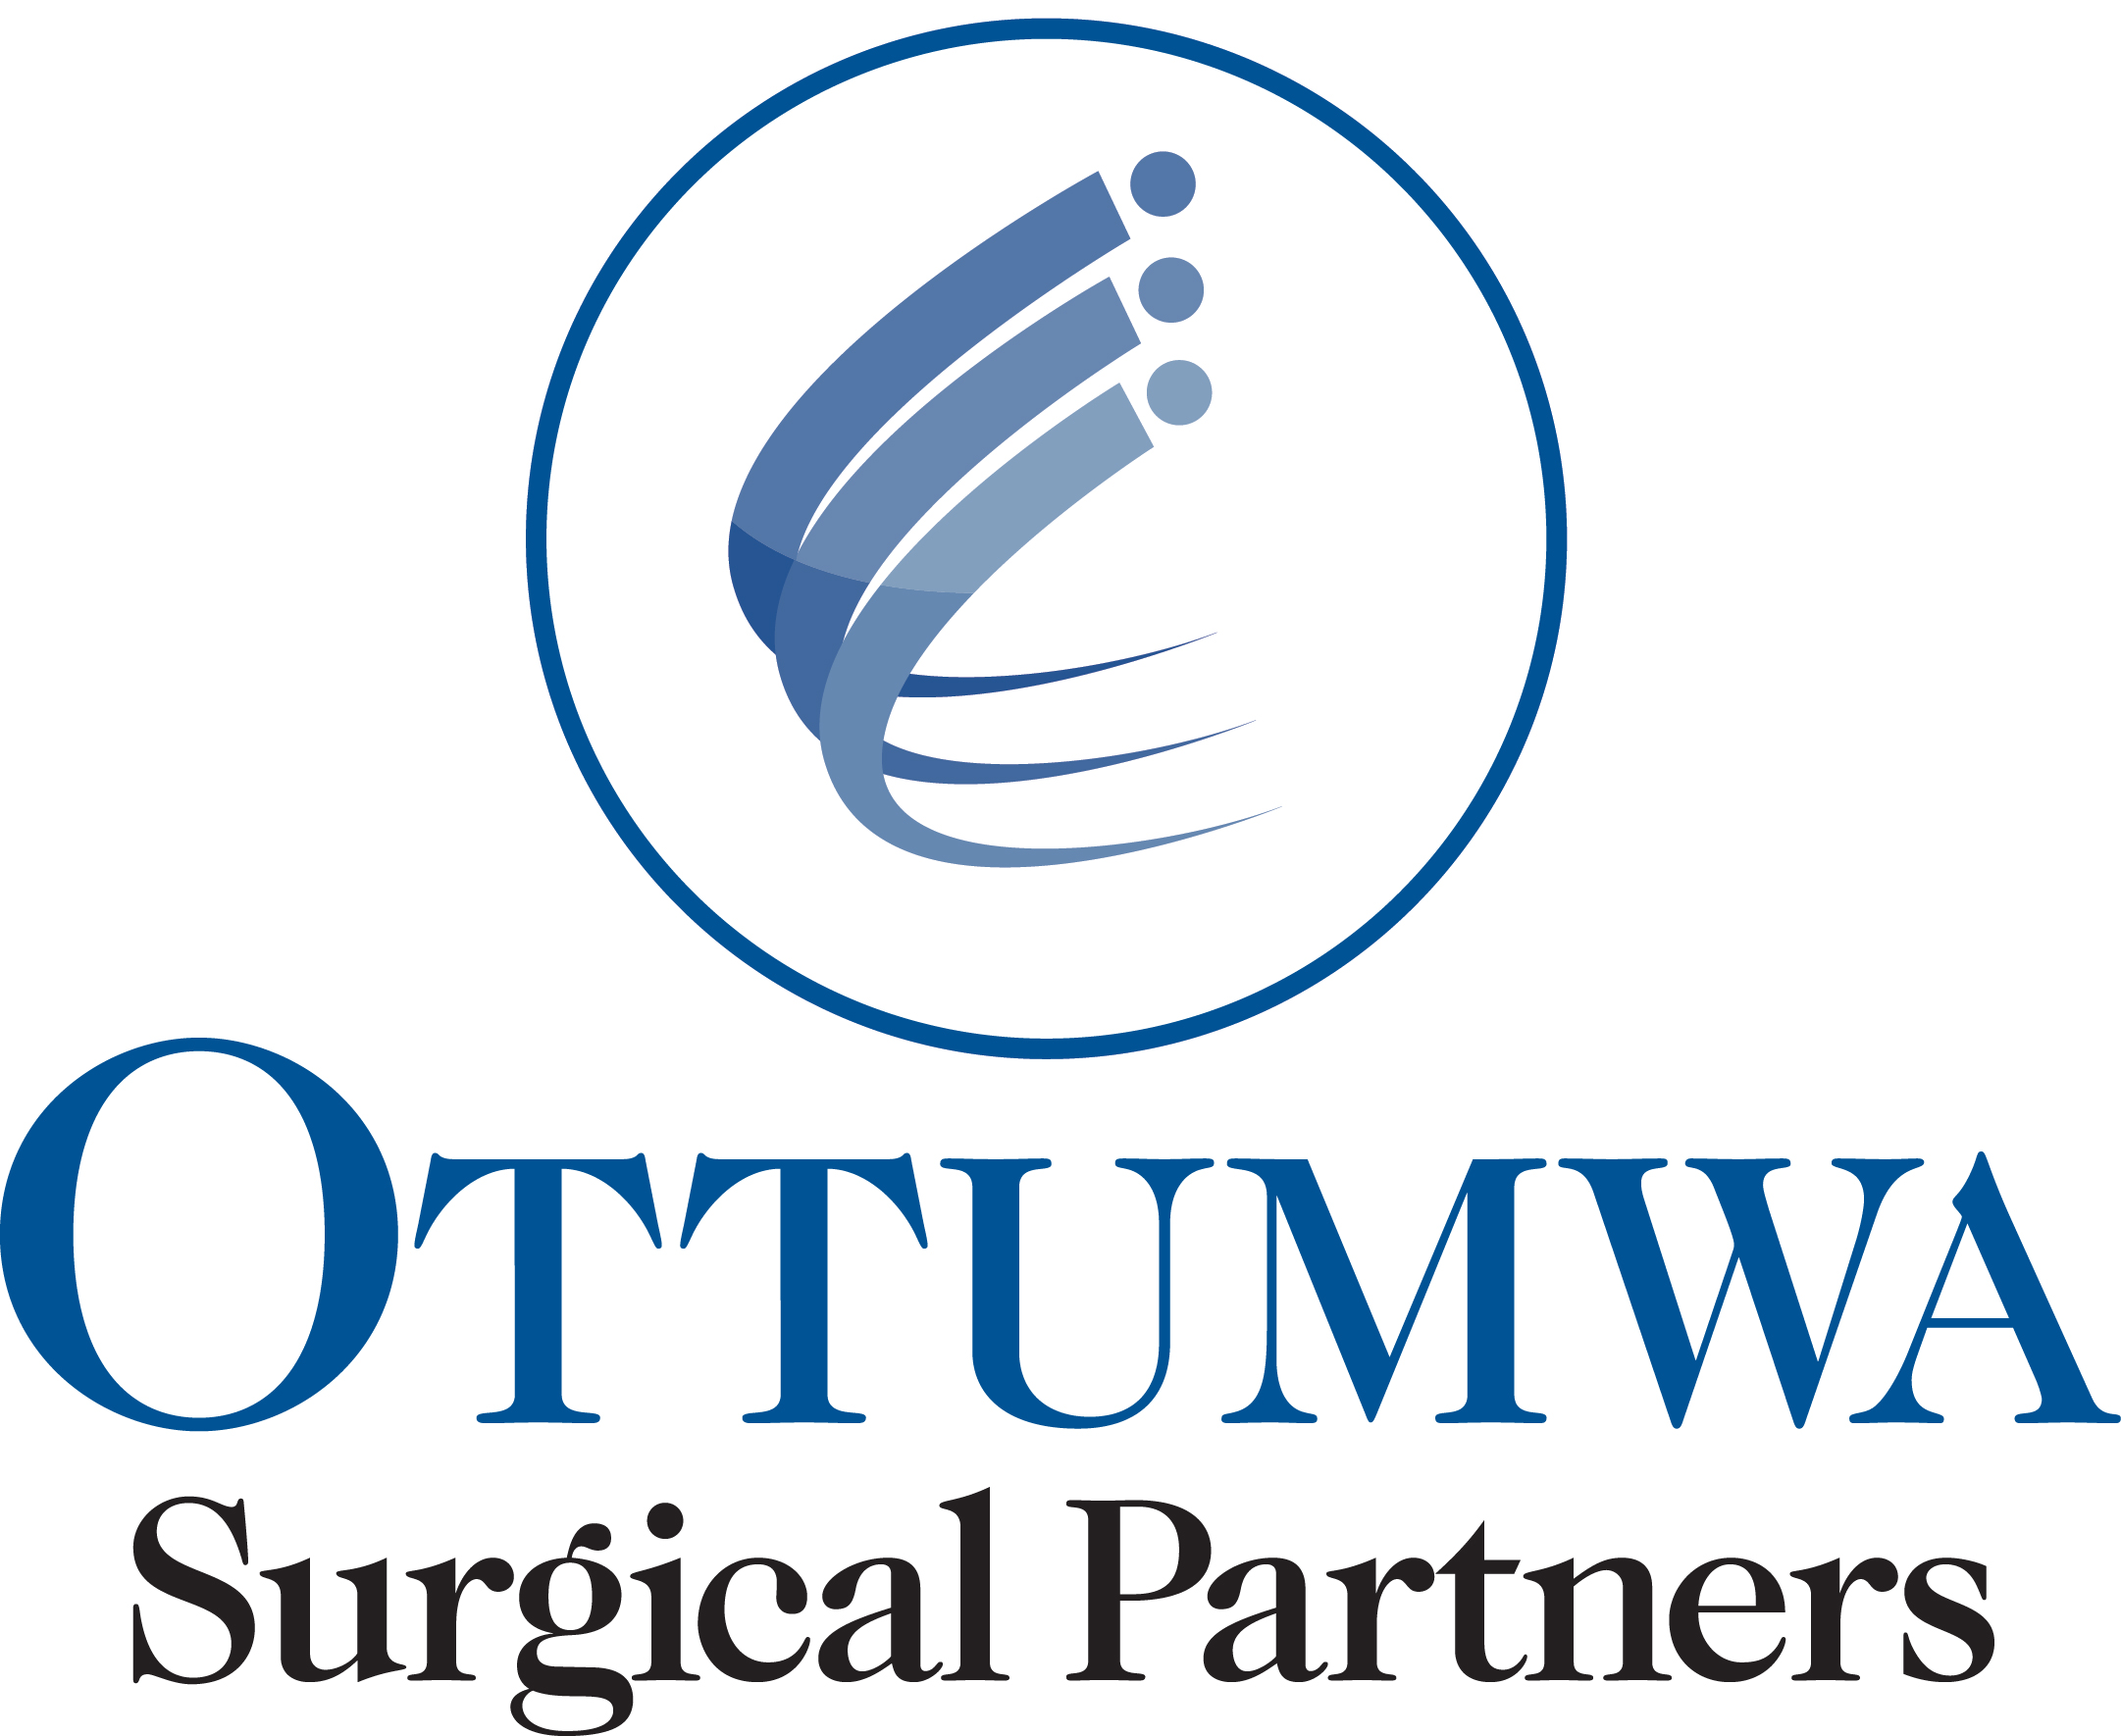 Ottumwa Surgical Partners Dr. Ortell